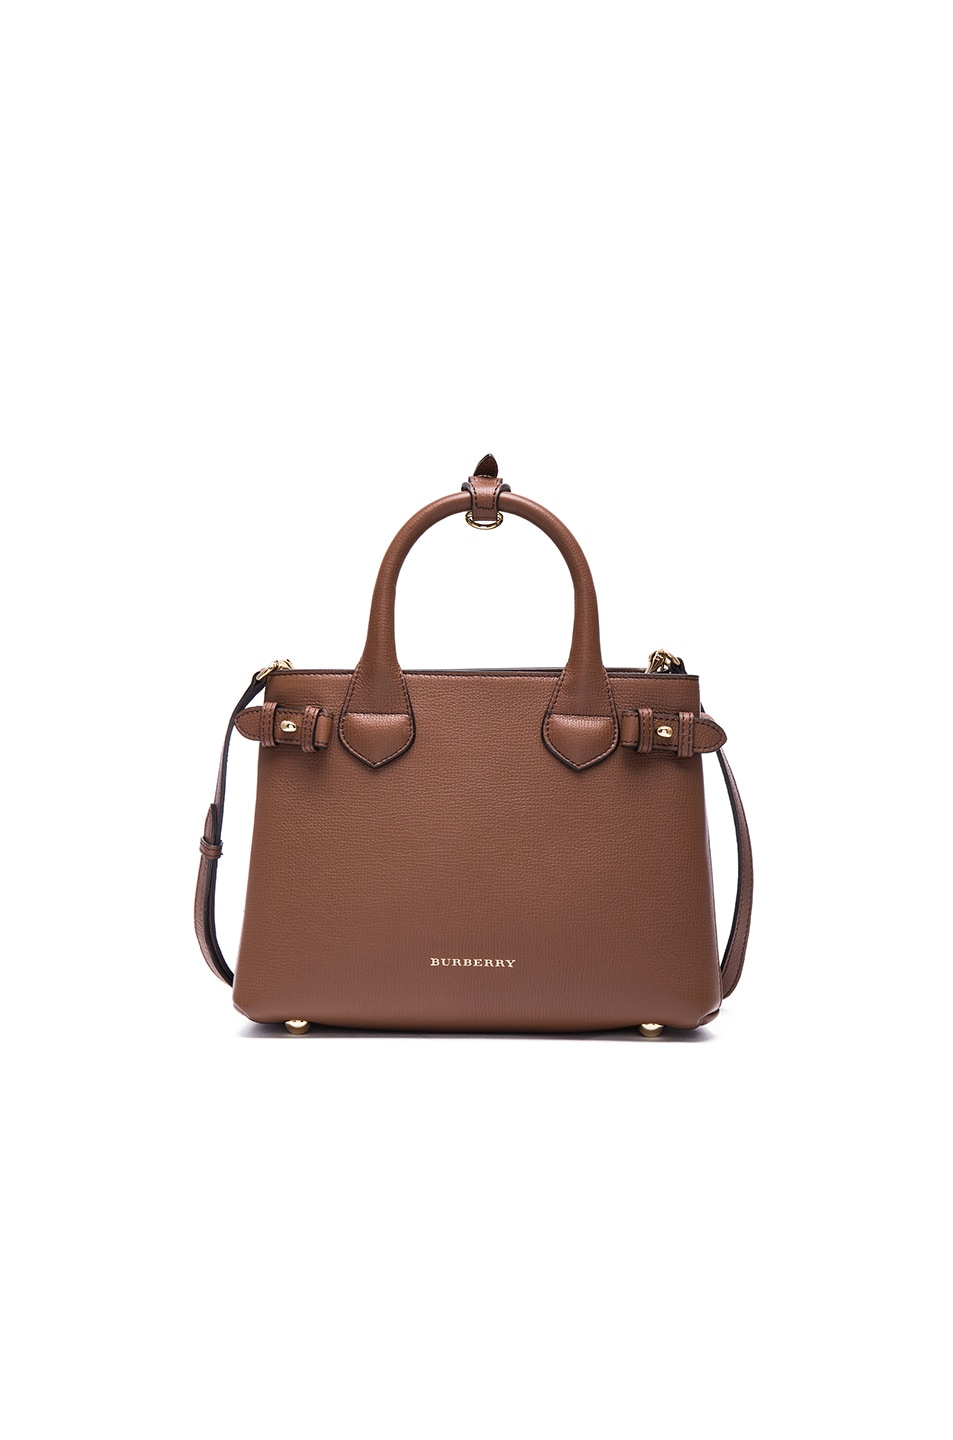 e5bbaaa4535e Image 1 of Burberry London Small Banner Check Leather Bag in Tan